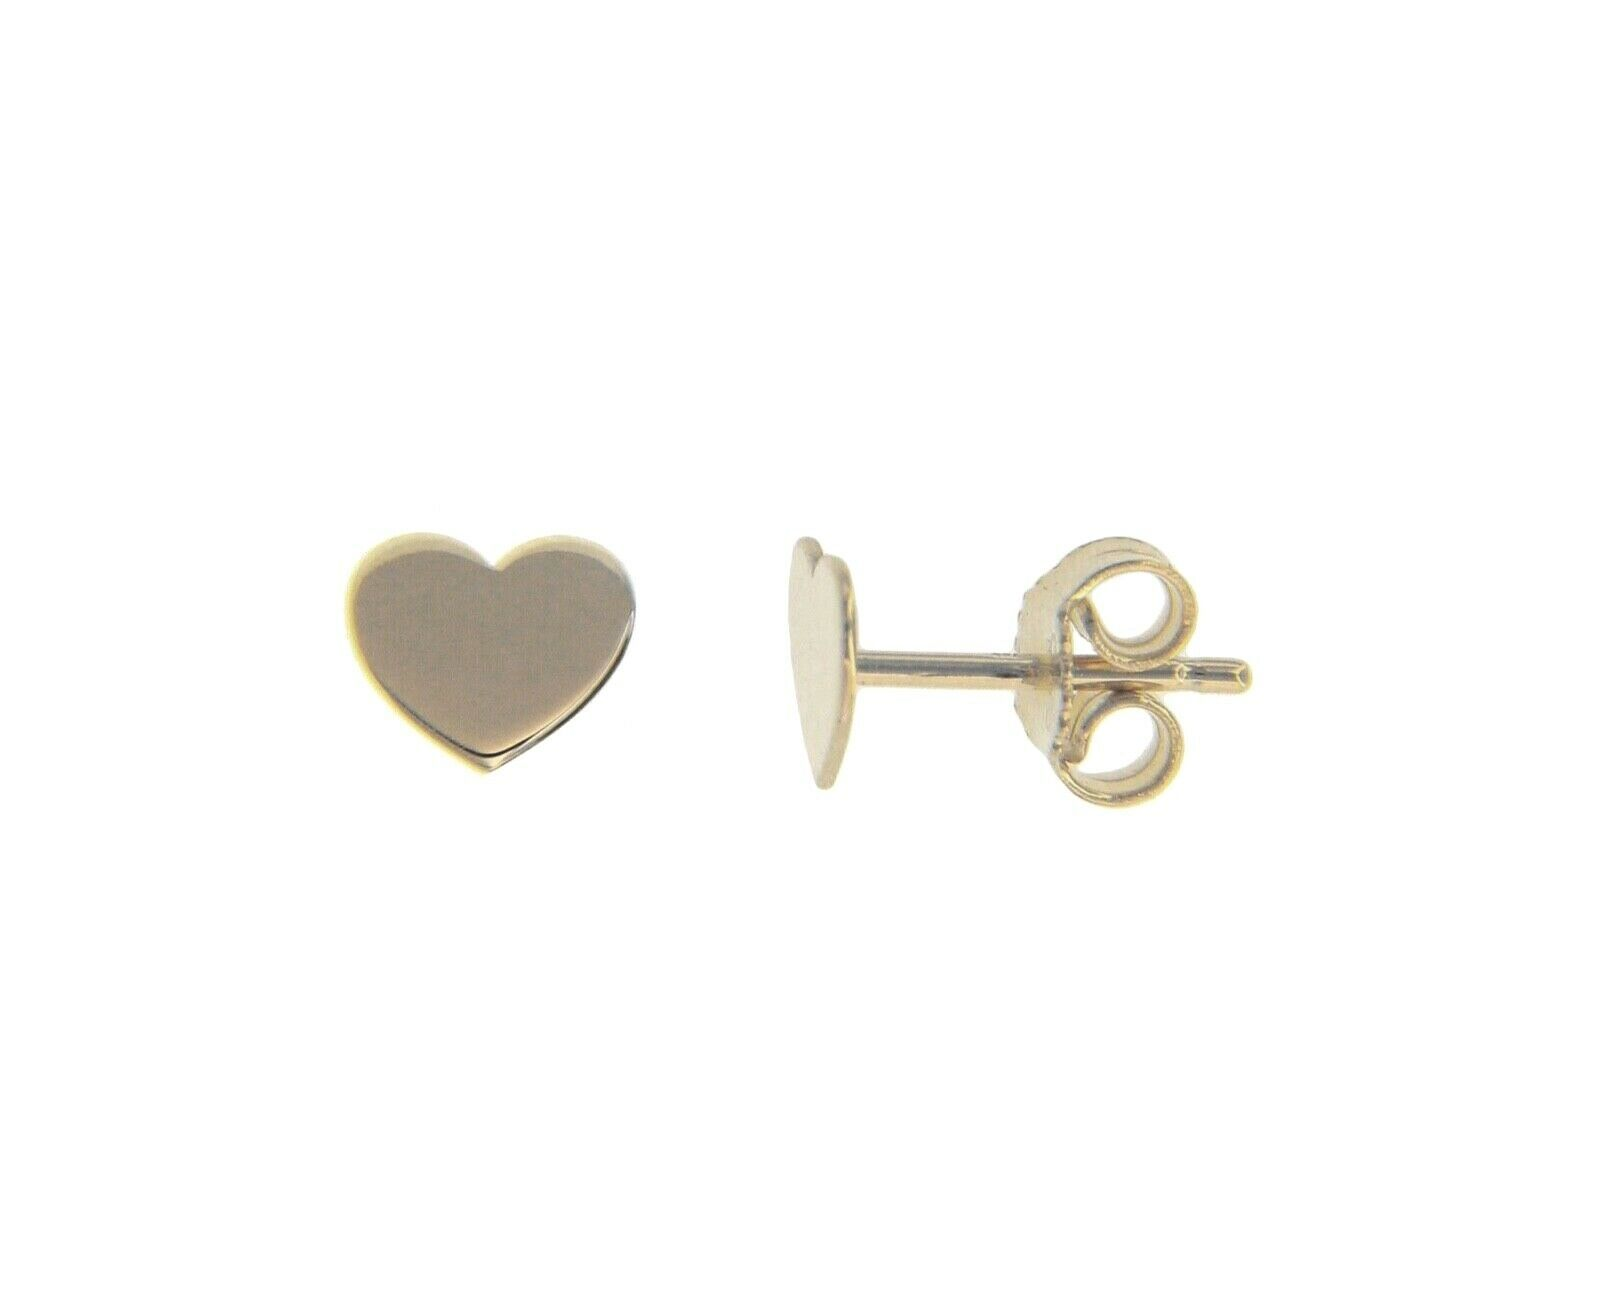 SOLID 18K WHITE GOLD EARRINGS FLAT HEART, SHINY, SMOOTH, 8x6mm, MADE IN ITALY